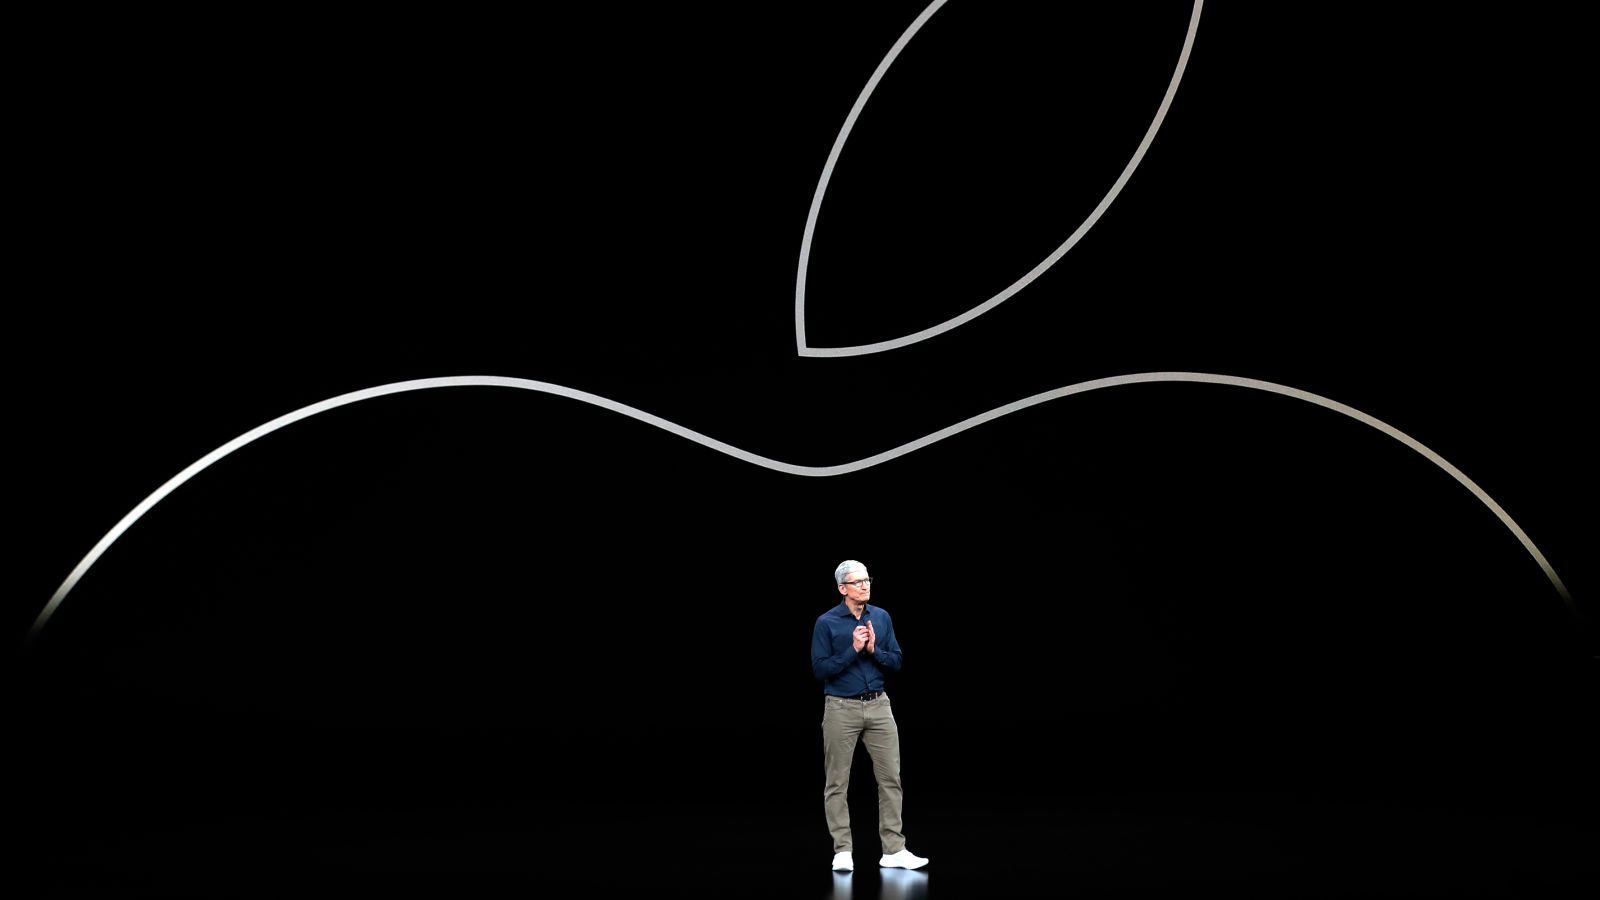 it-sounds-like-it-could-be-a-while-until-we-actually-get-apple8217s-streaming-service-8211-gizmodo.jpg